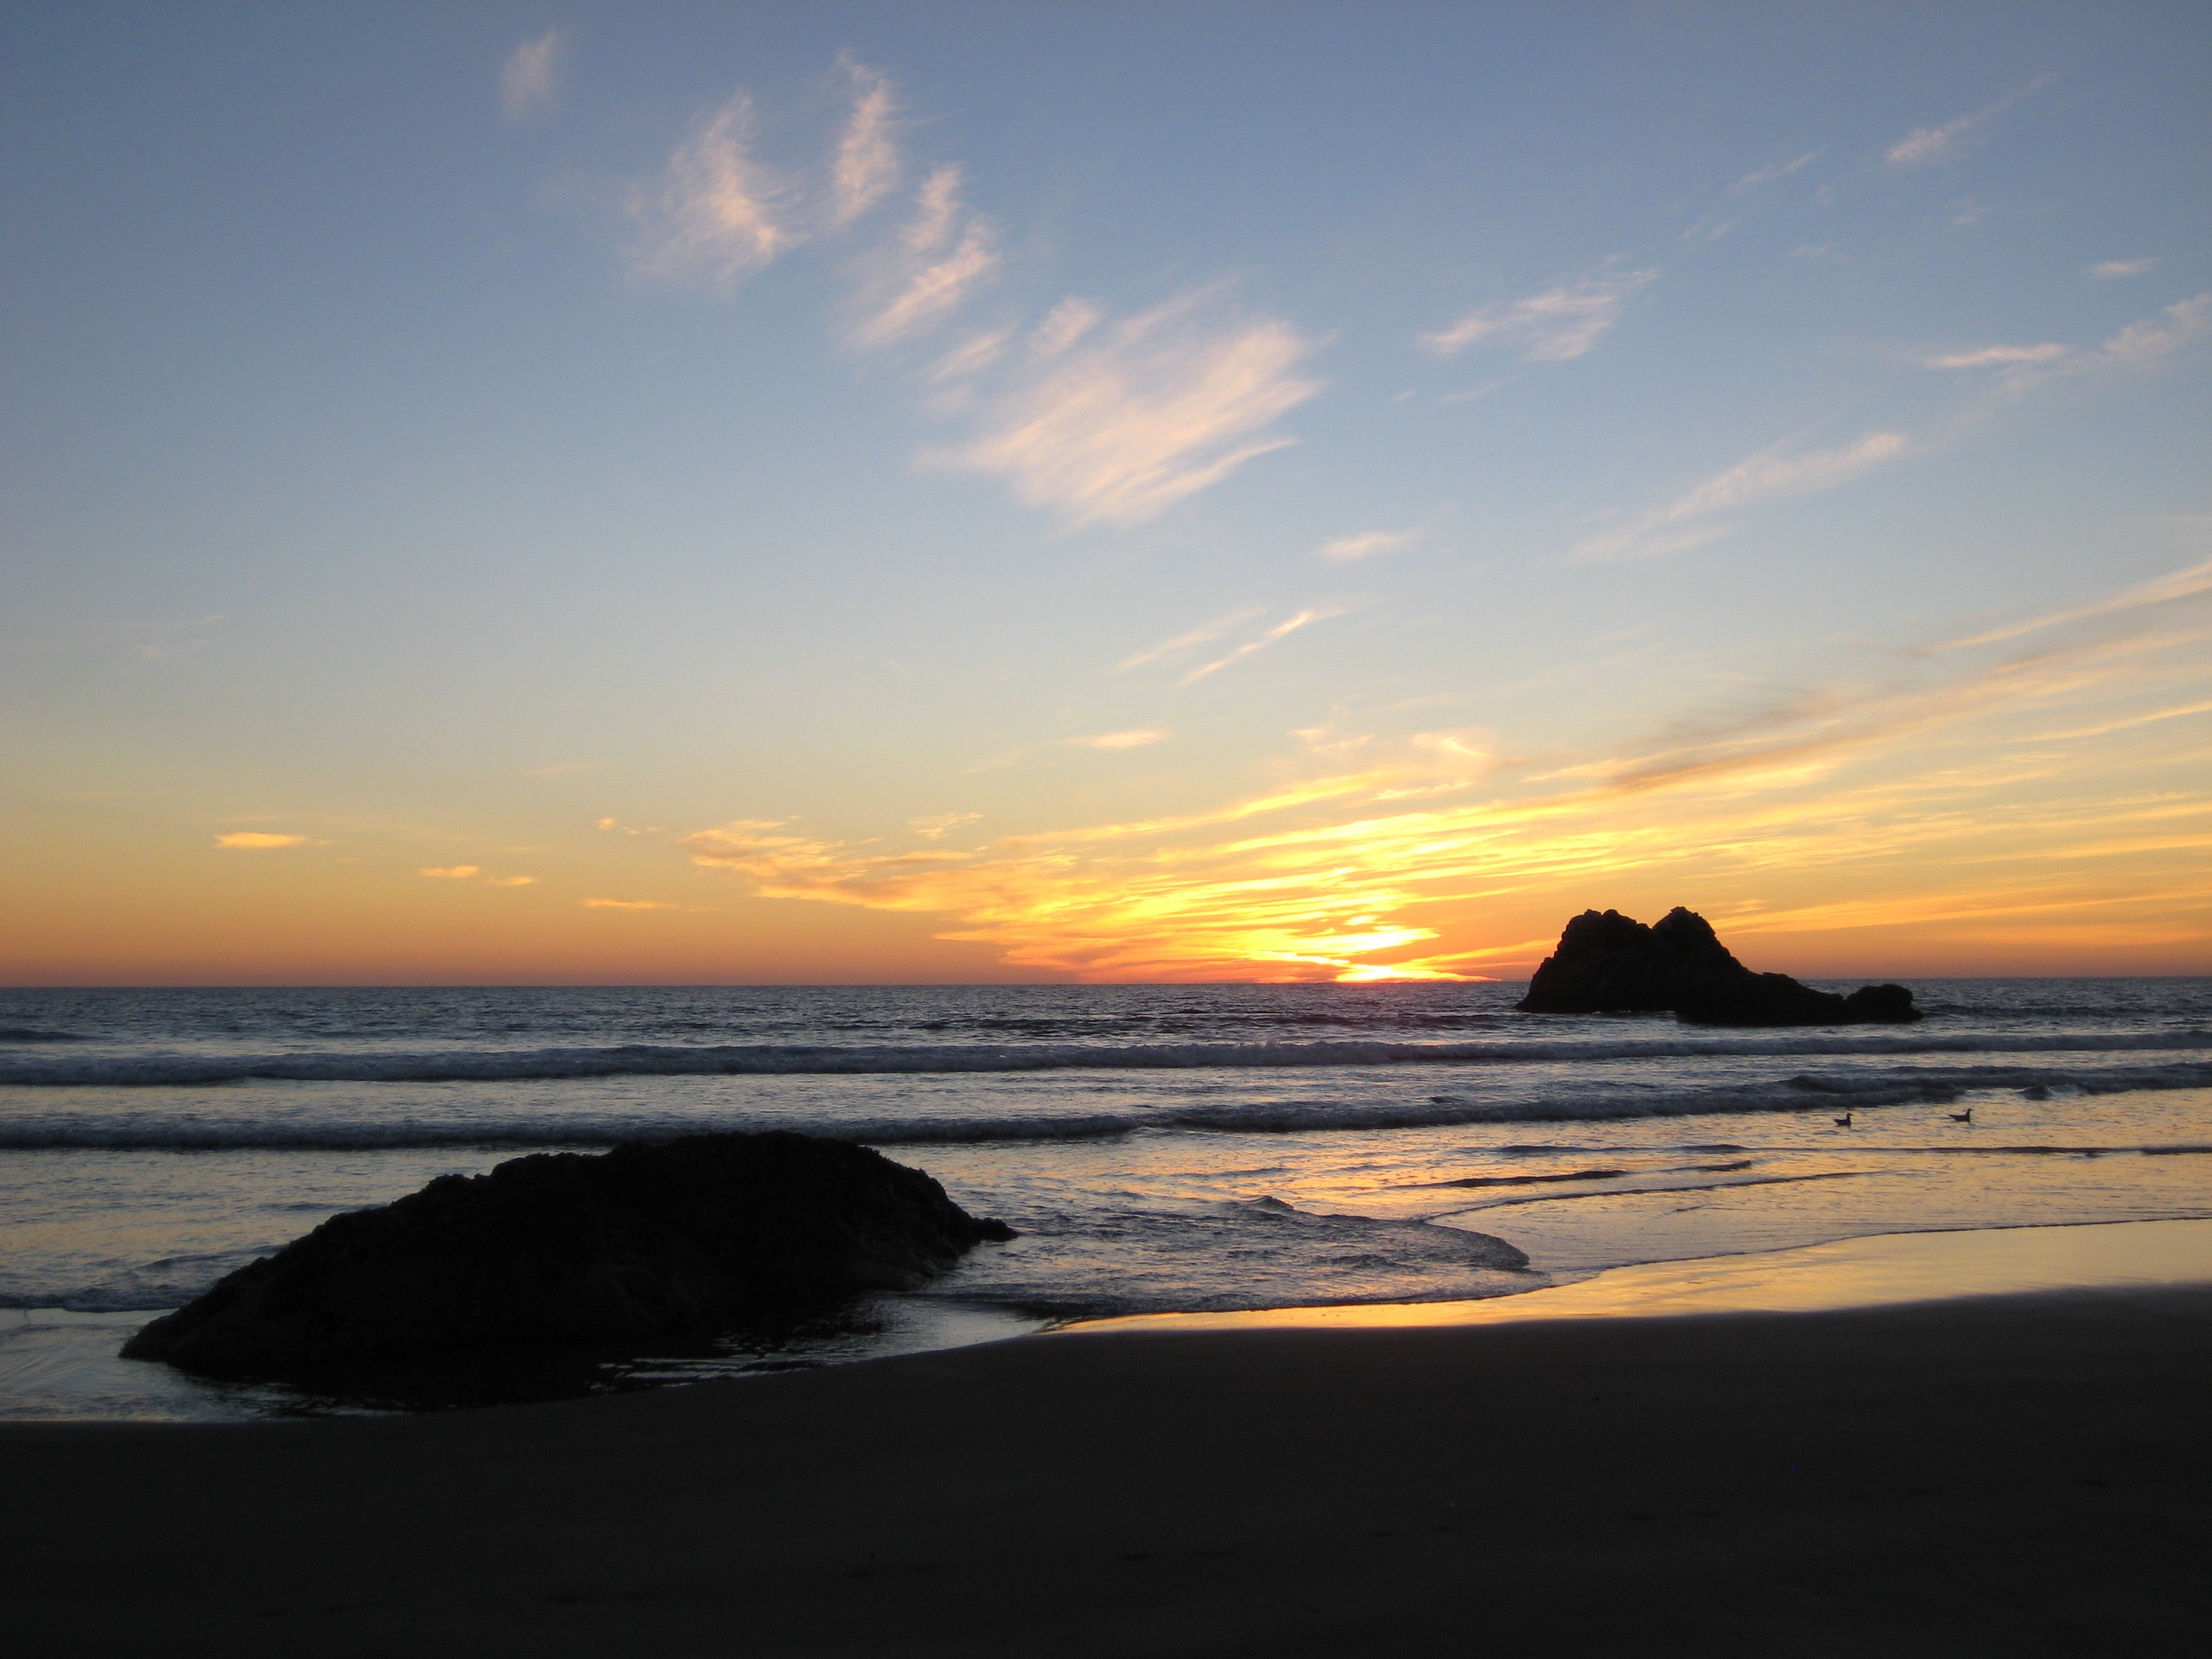 Orange sunset at the beach in Morro Bay.